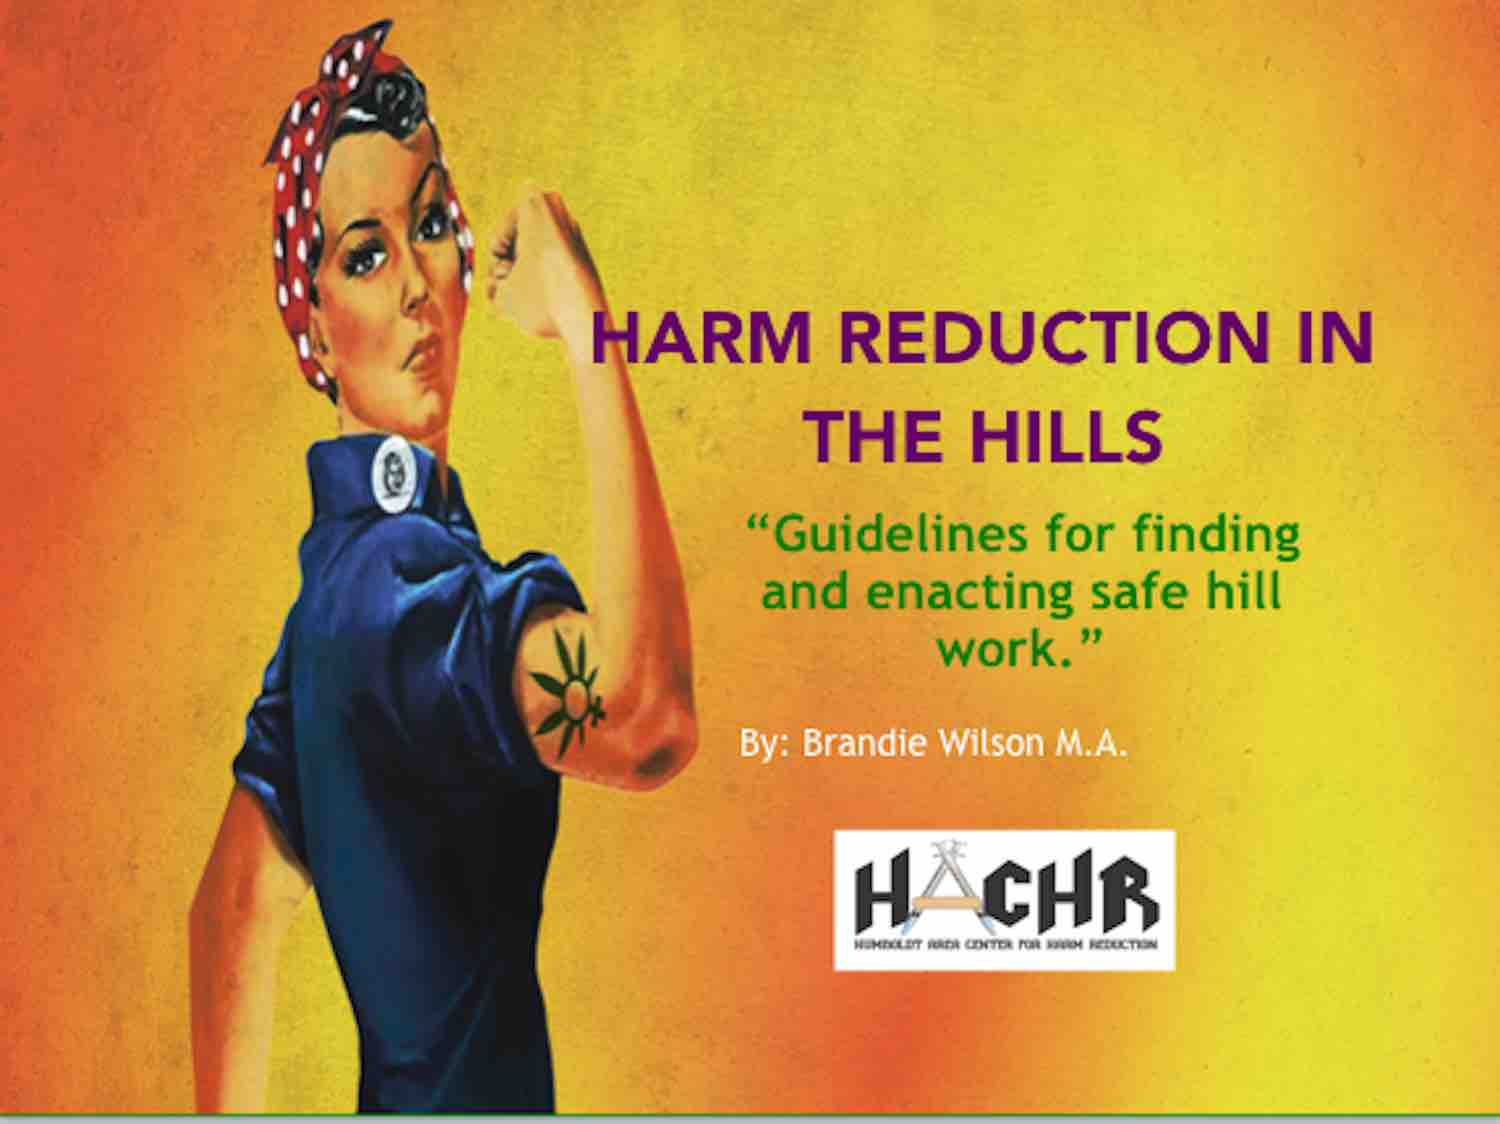 Harm Reduction in the Hills